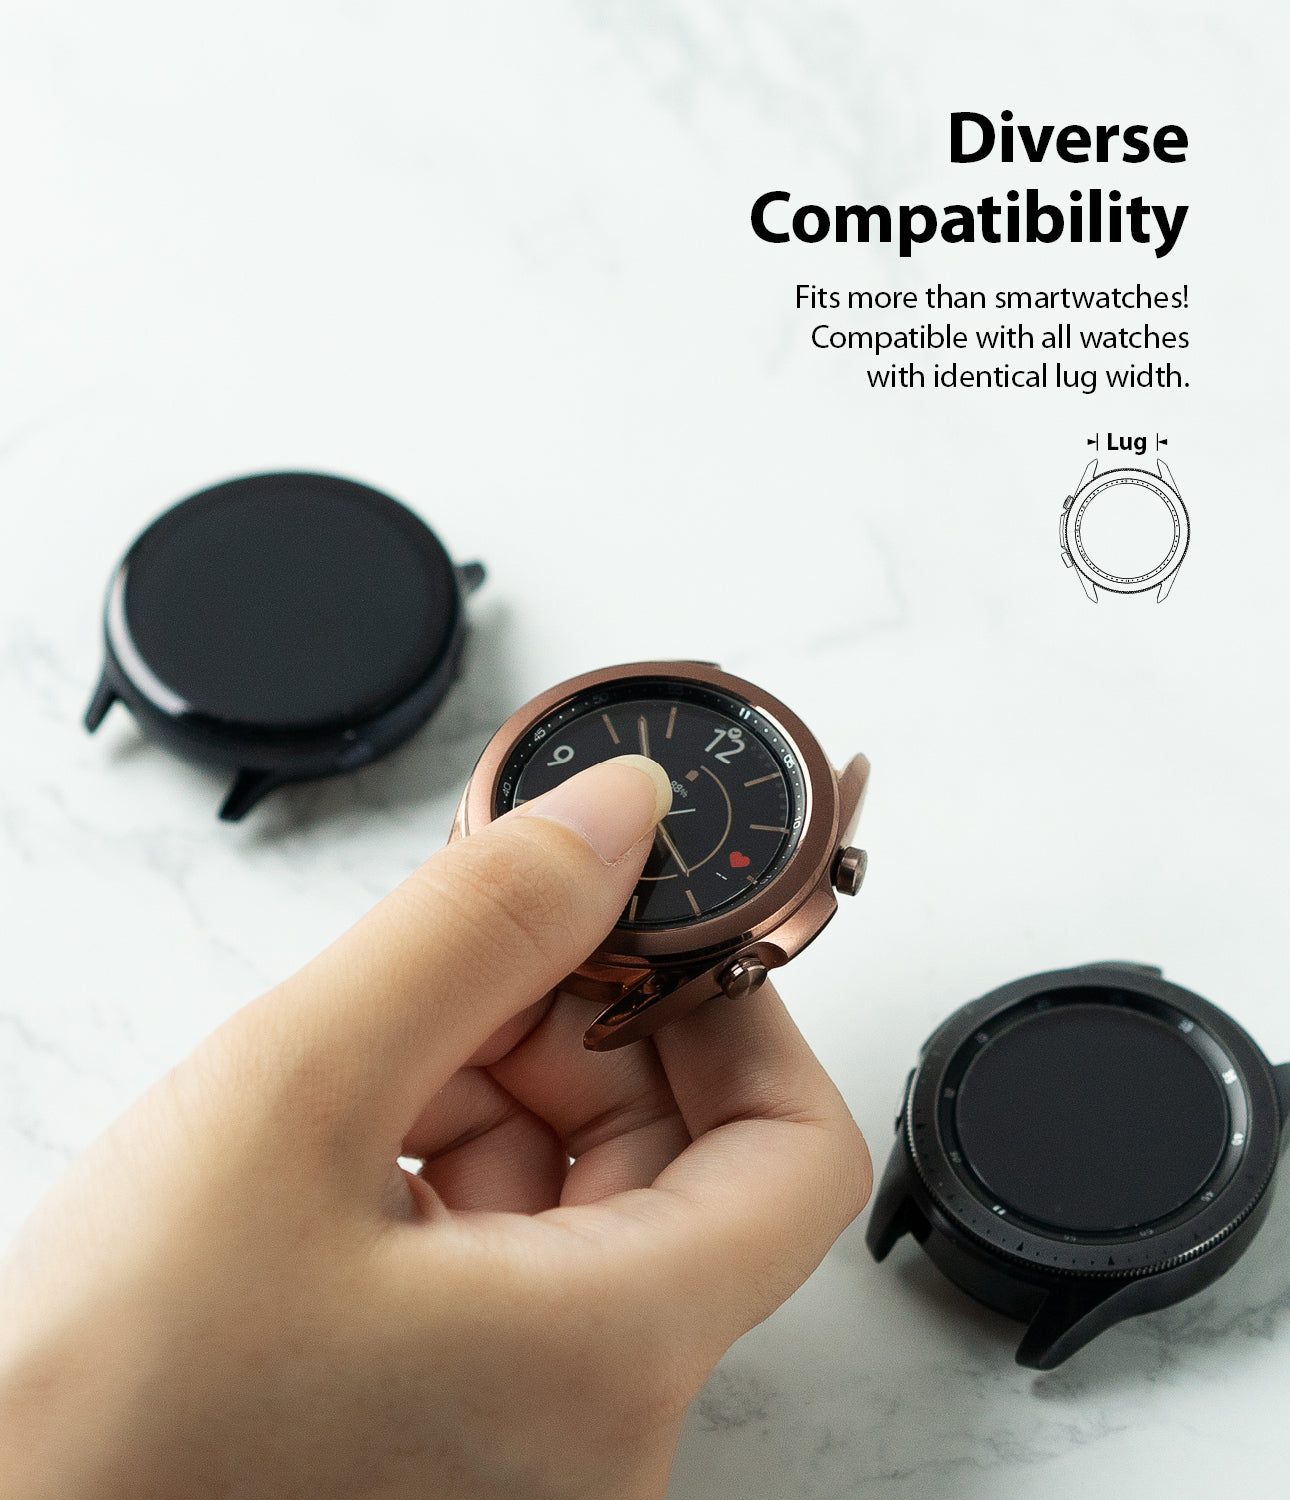 diverse compatibility  - also compatible with same lug sized classic watches